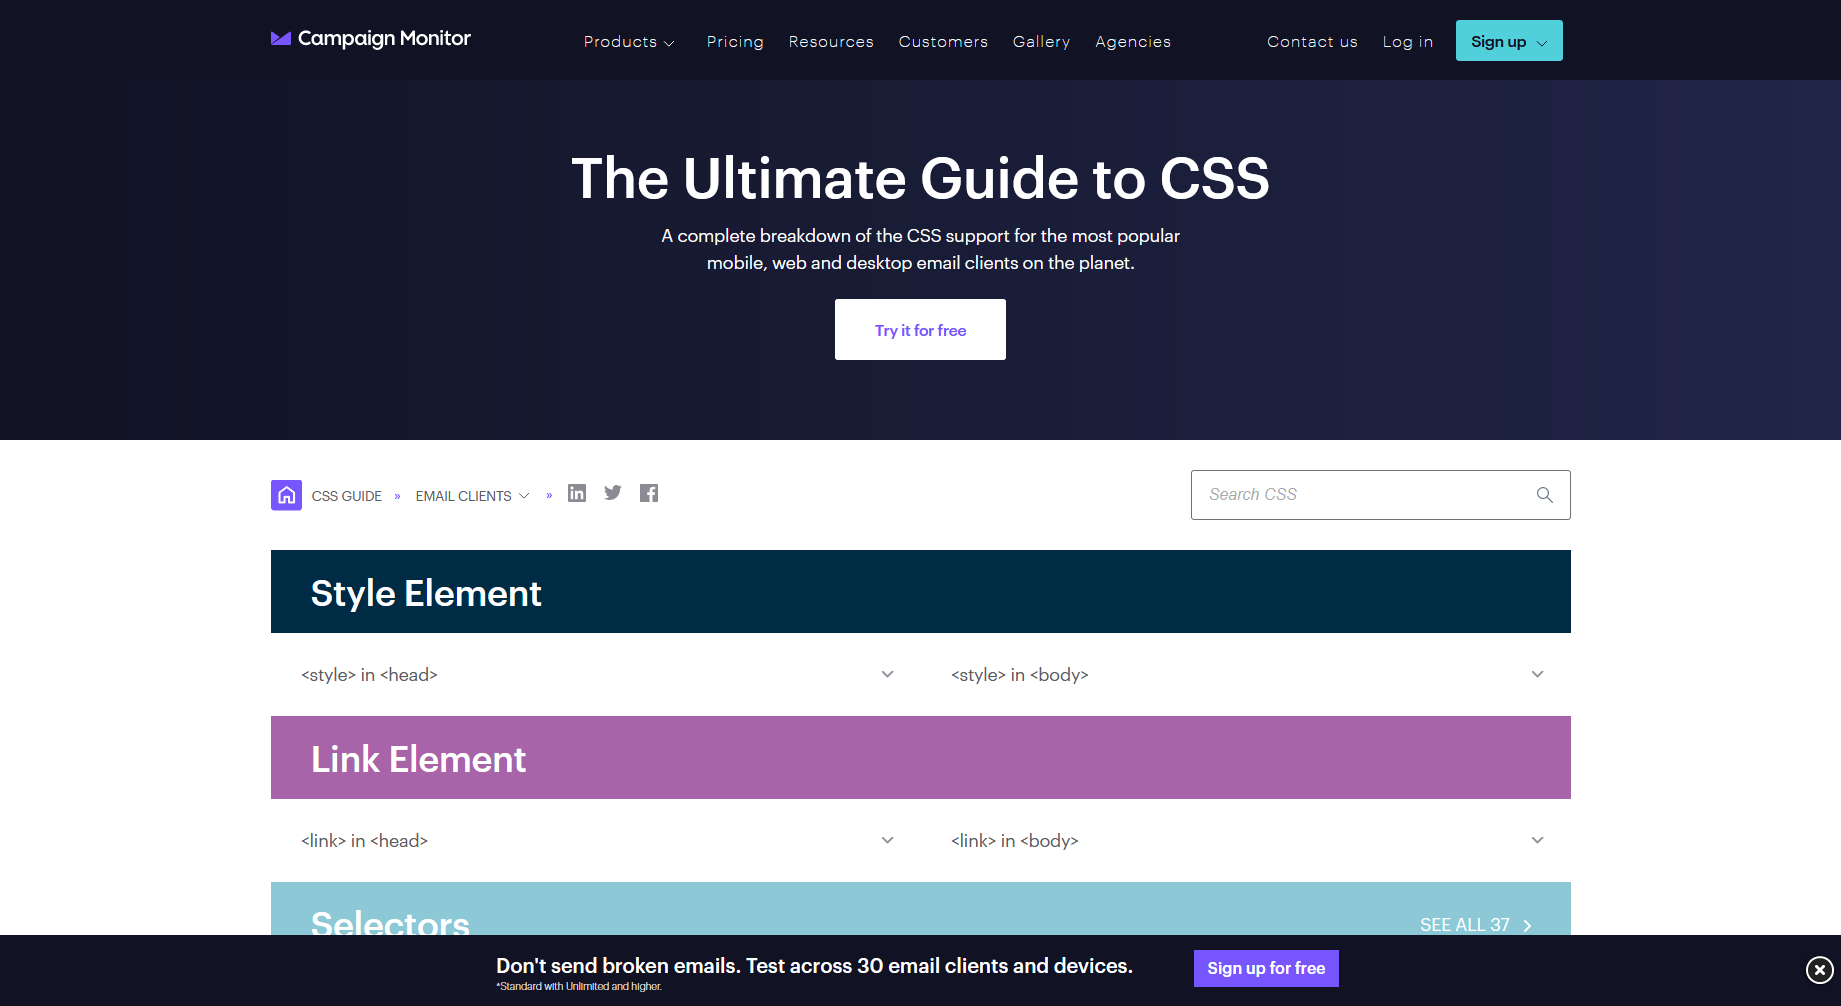 CSS Support Guide for Email Clients